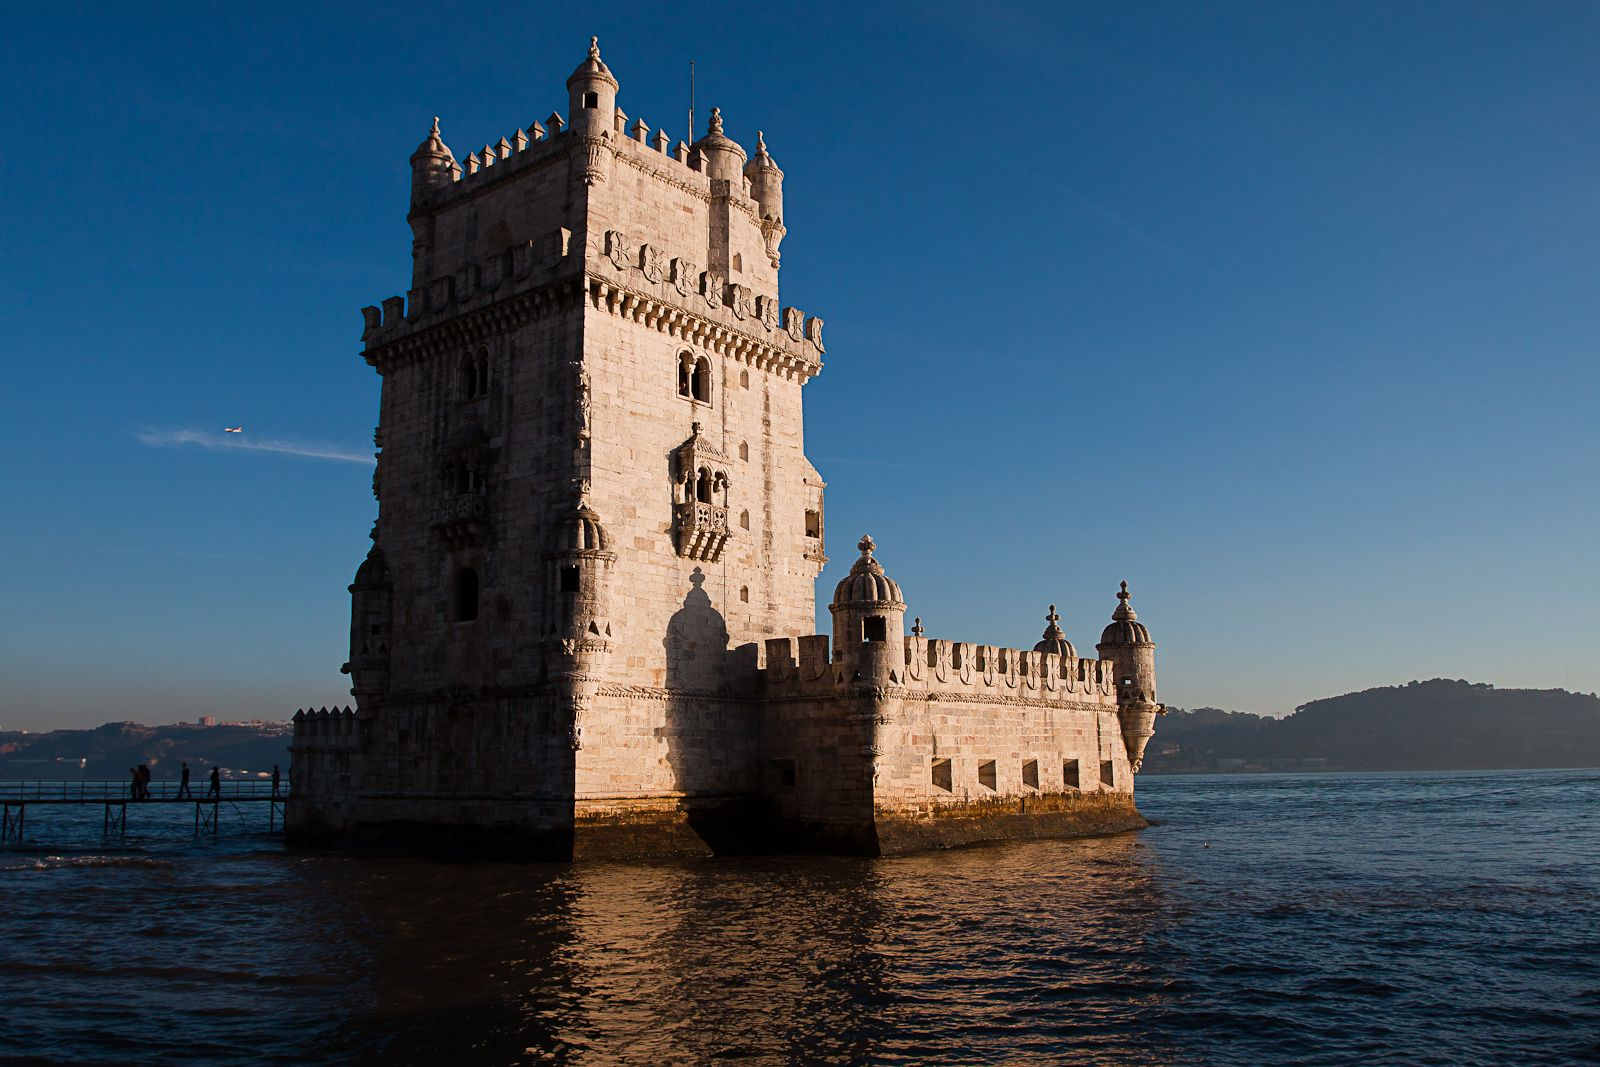 Lisbon Torre De Belem Just Reminds Me The Age Of Exploration Places To Visit Lisbon Portugal Travel